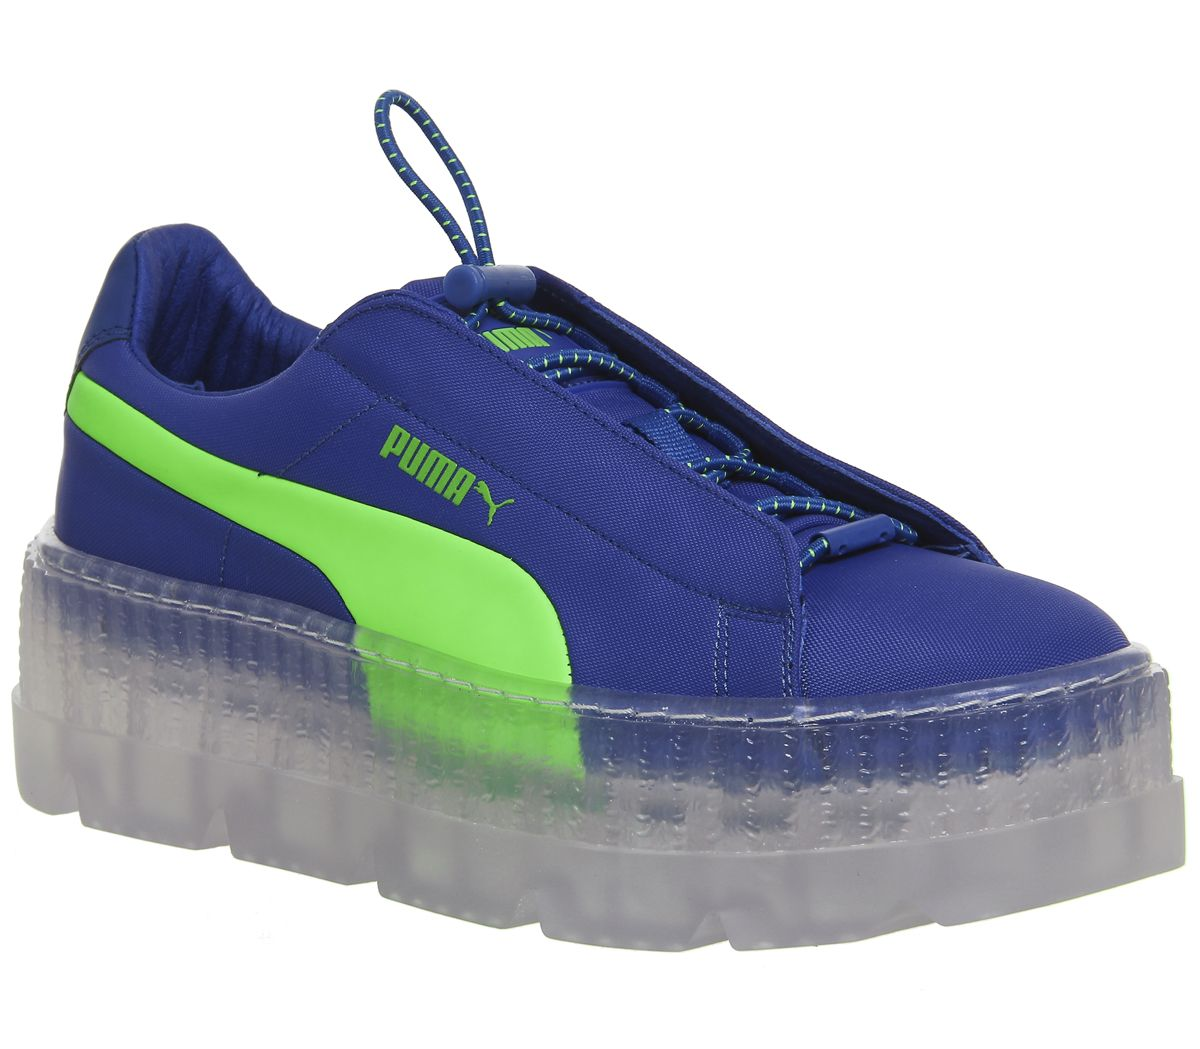 buy online 305df 609ed Fenty Cleated Creepers